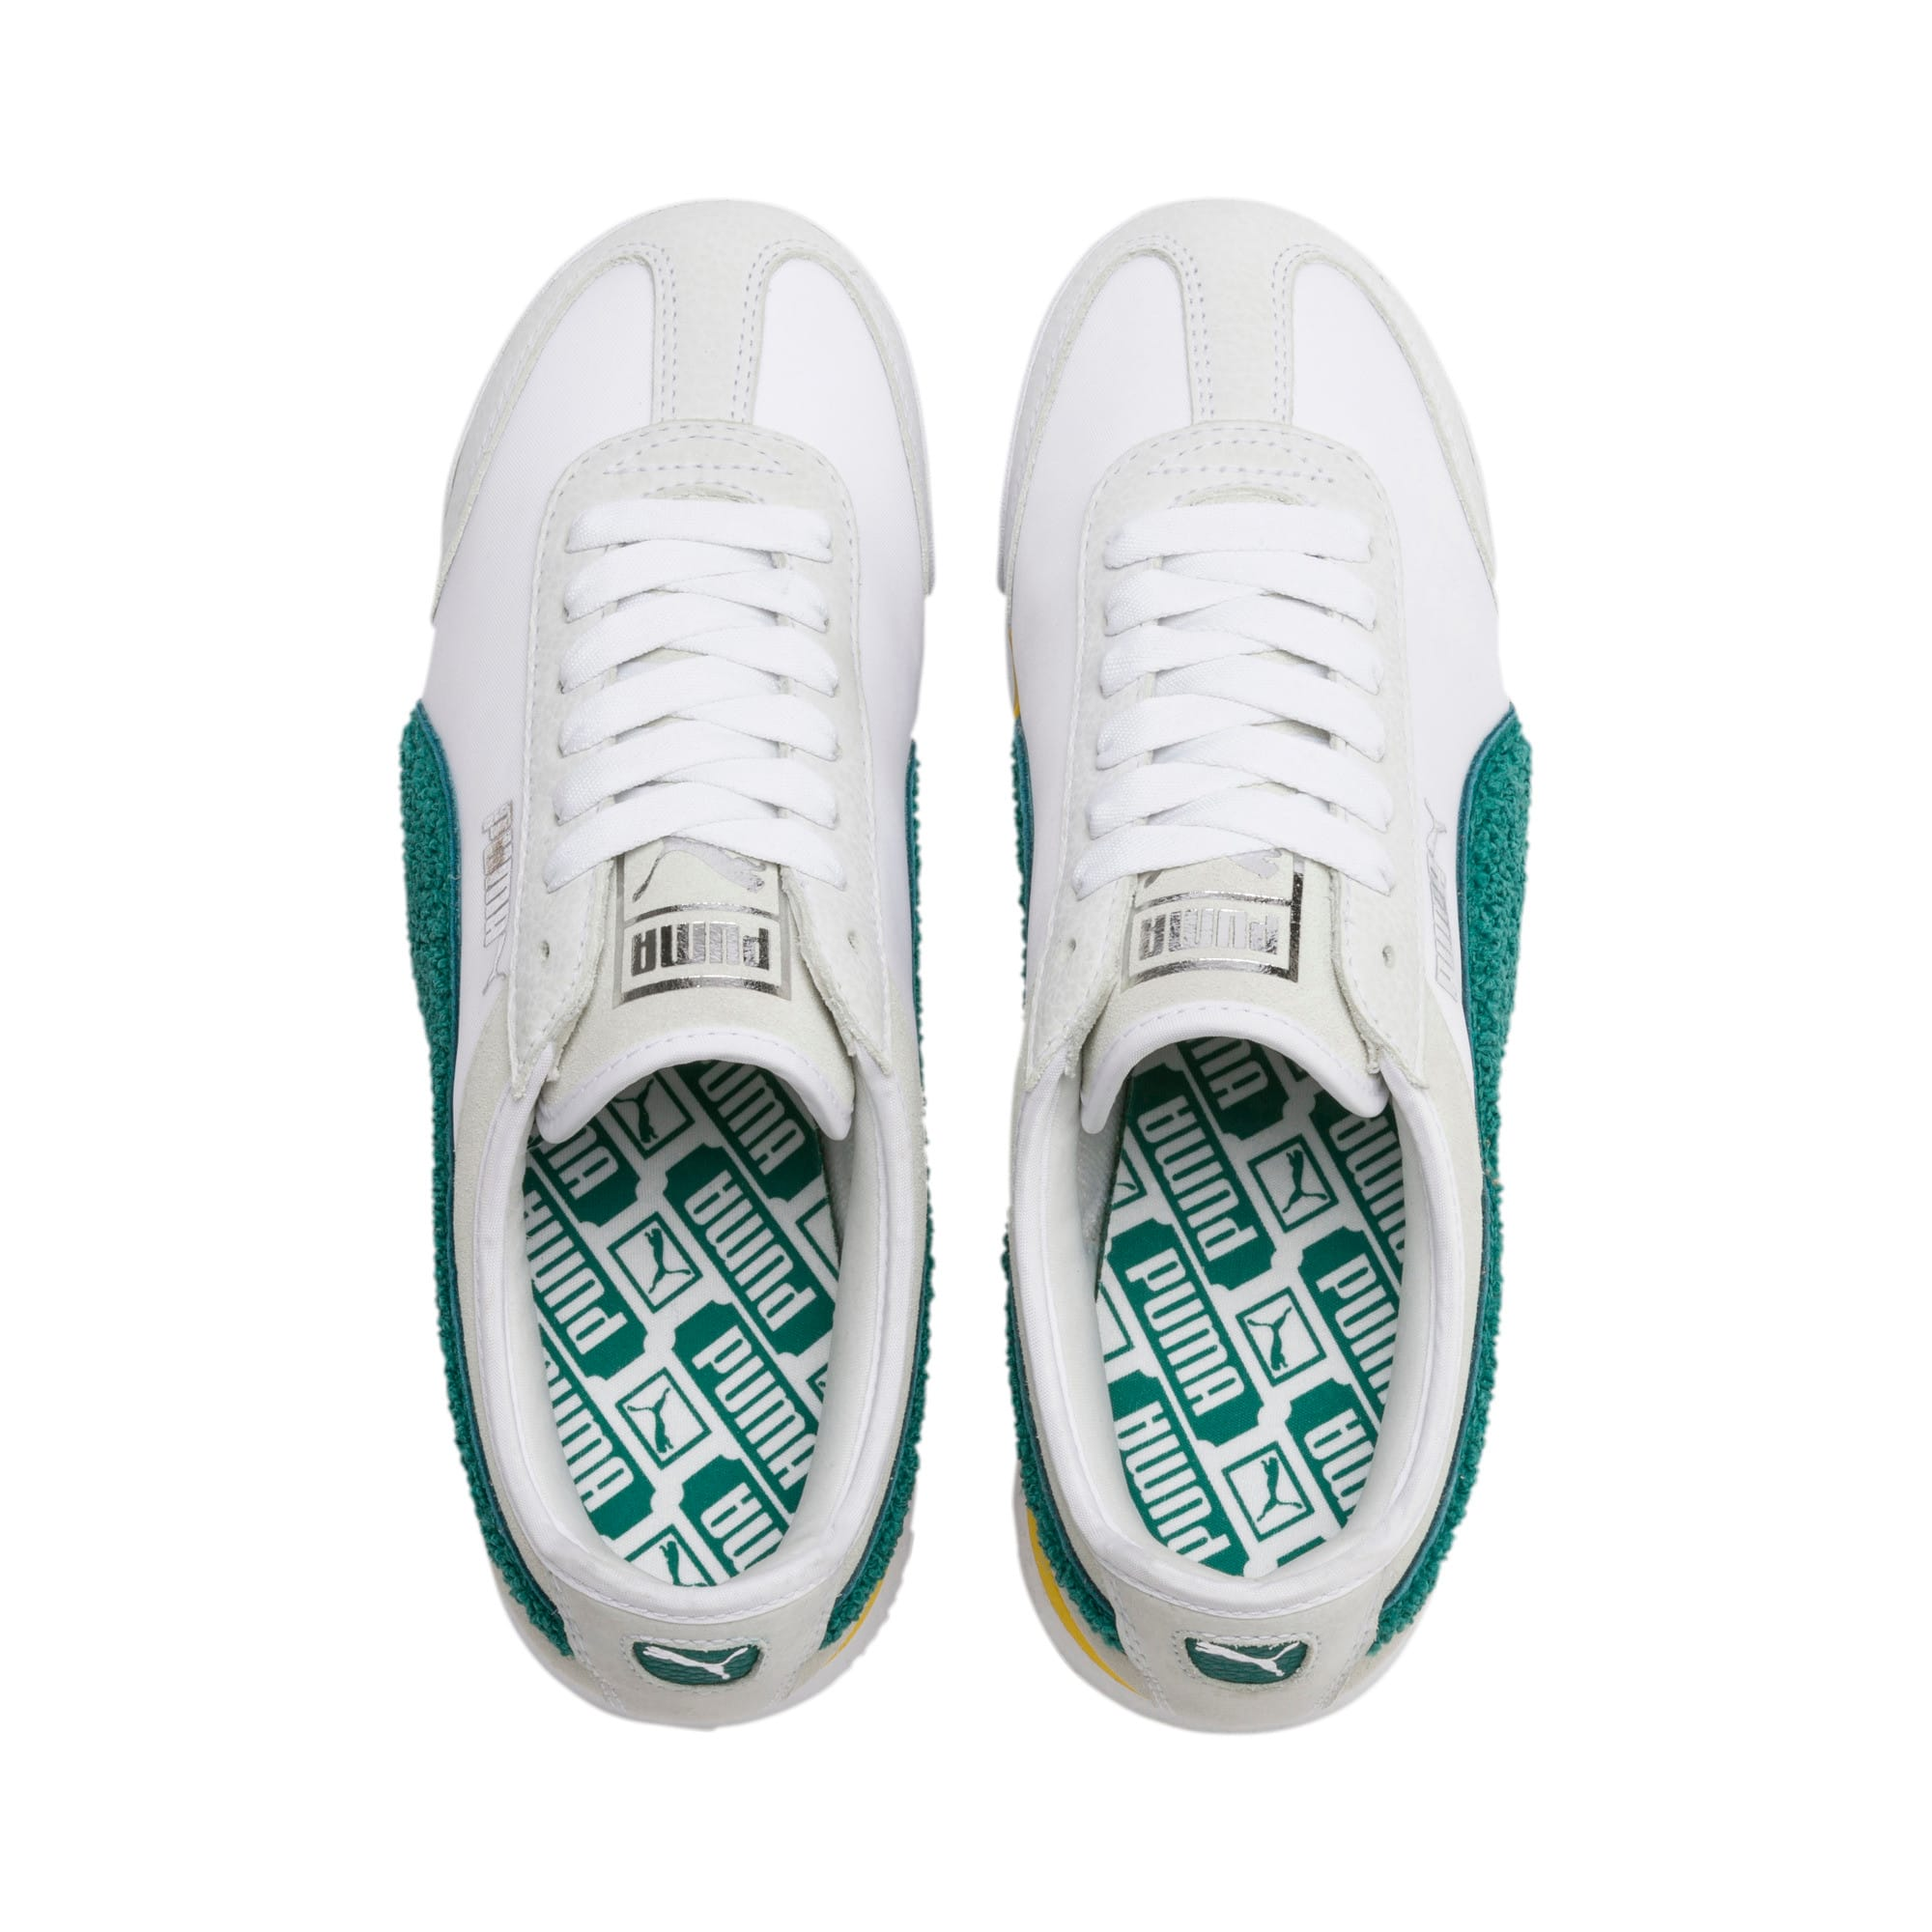 Thumbnail 8 of Roma Amor Heritage Women's Sneakers, Puma White-Teal Green, medium